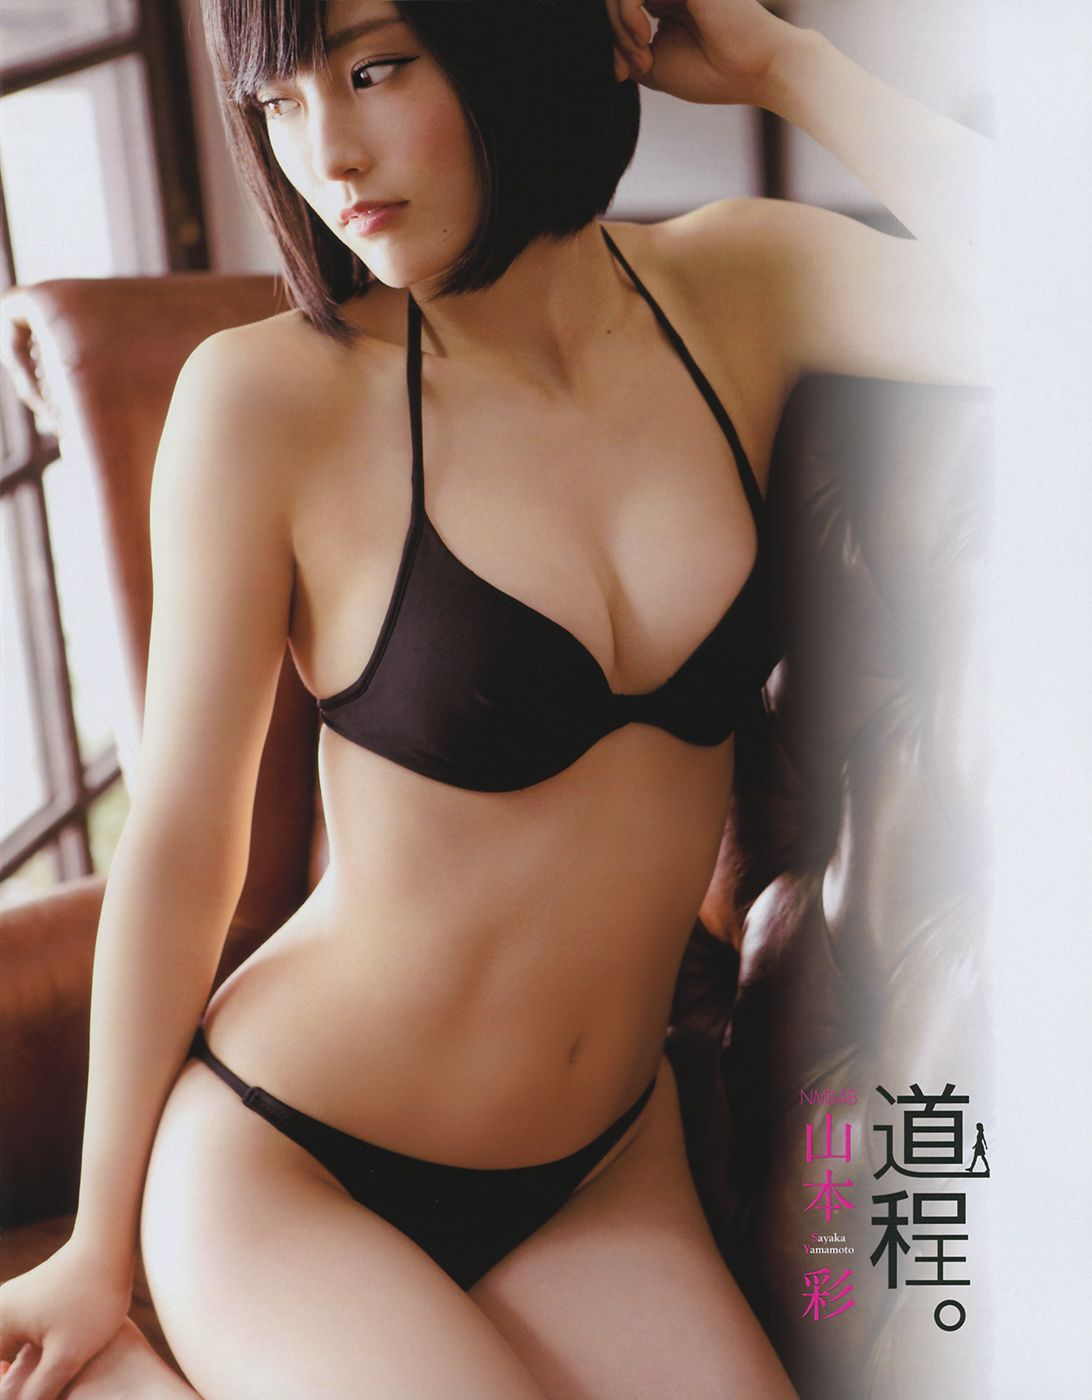 Lily love and asian candyhot com